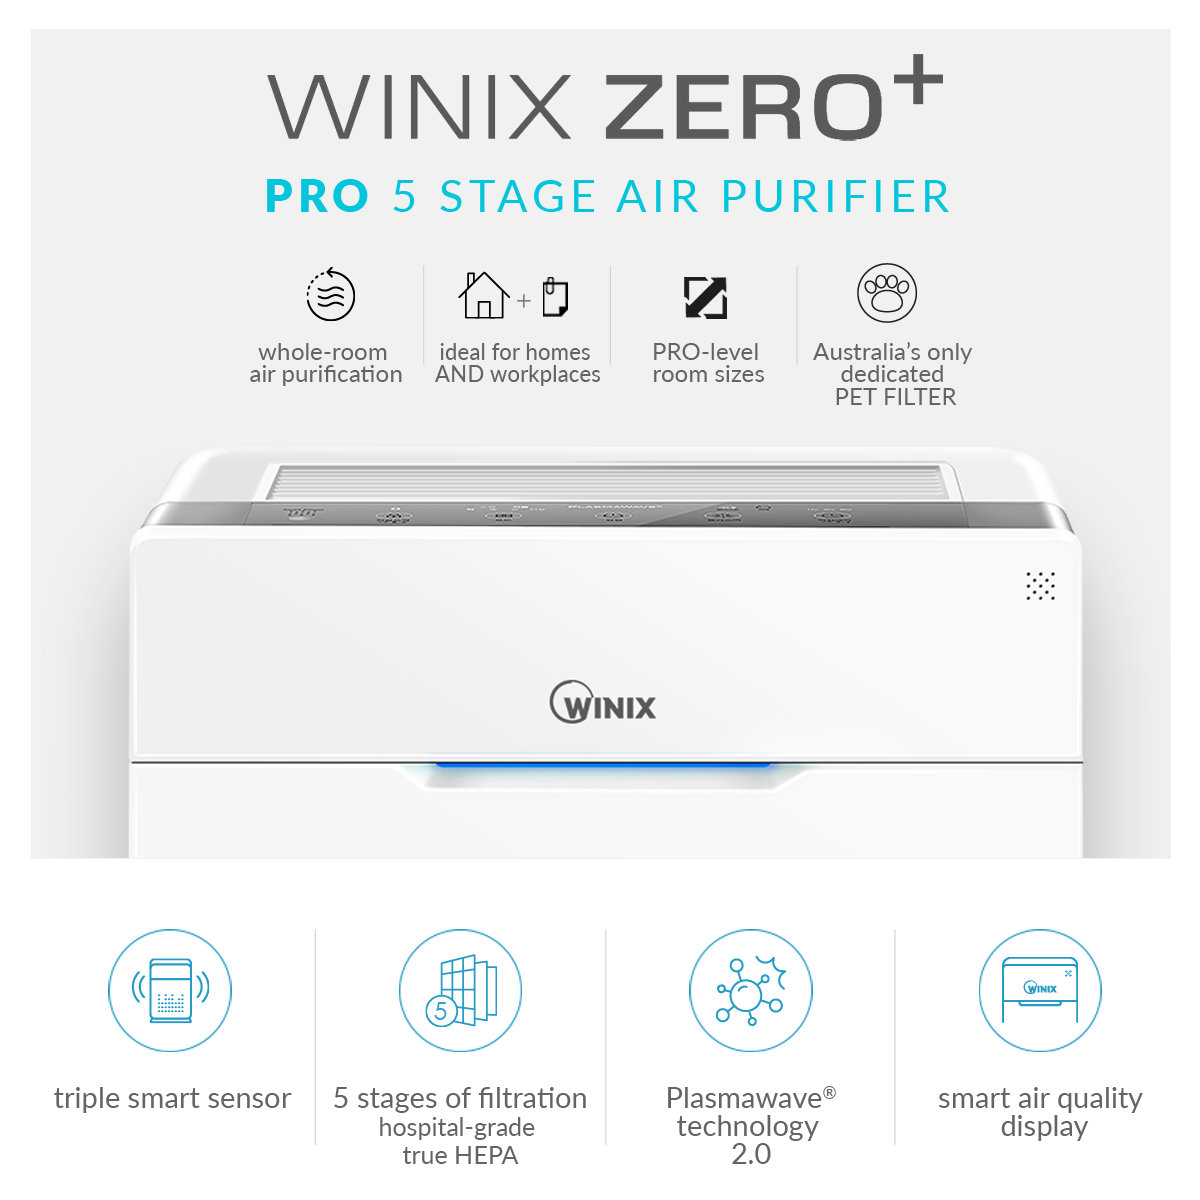 New Winix Zero Pro 5 Stage Air Purifier Aus 1250azpu Ebay